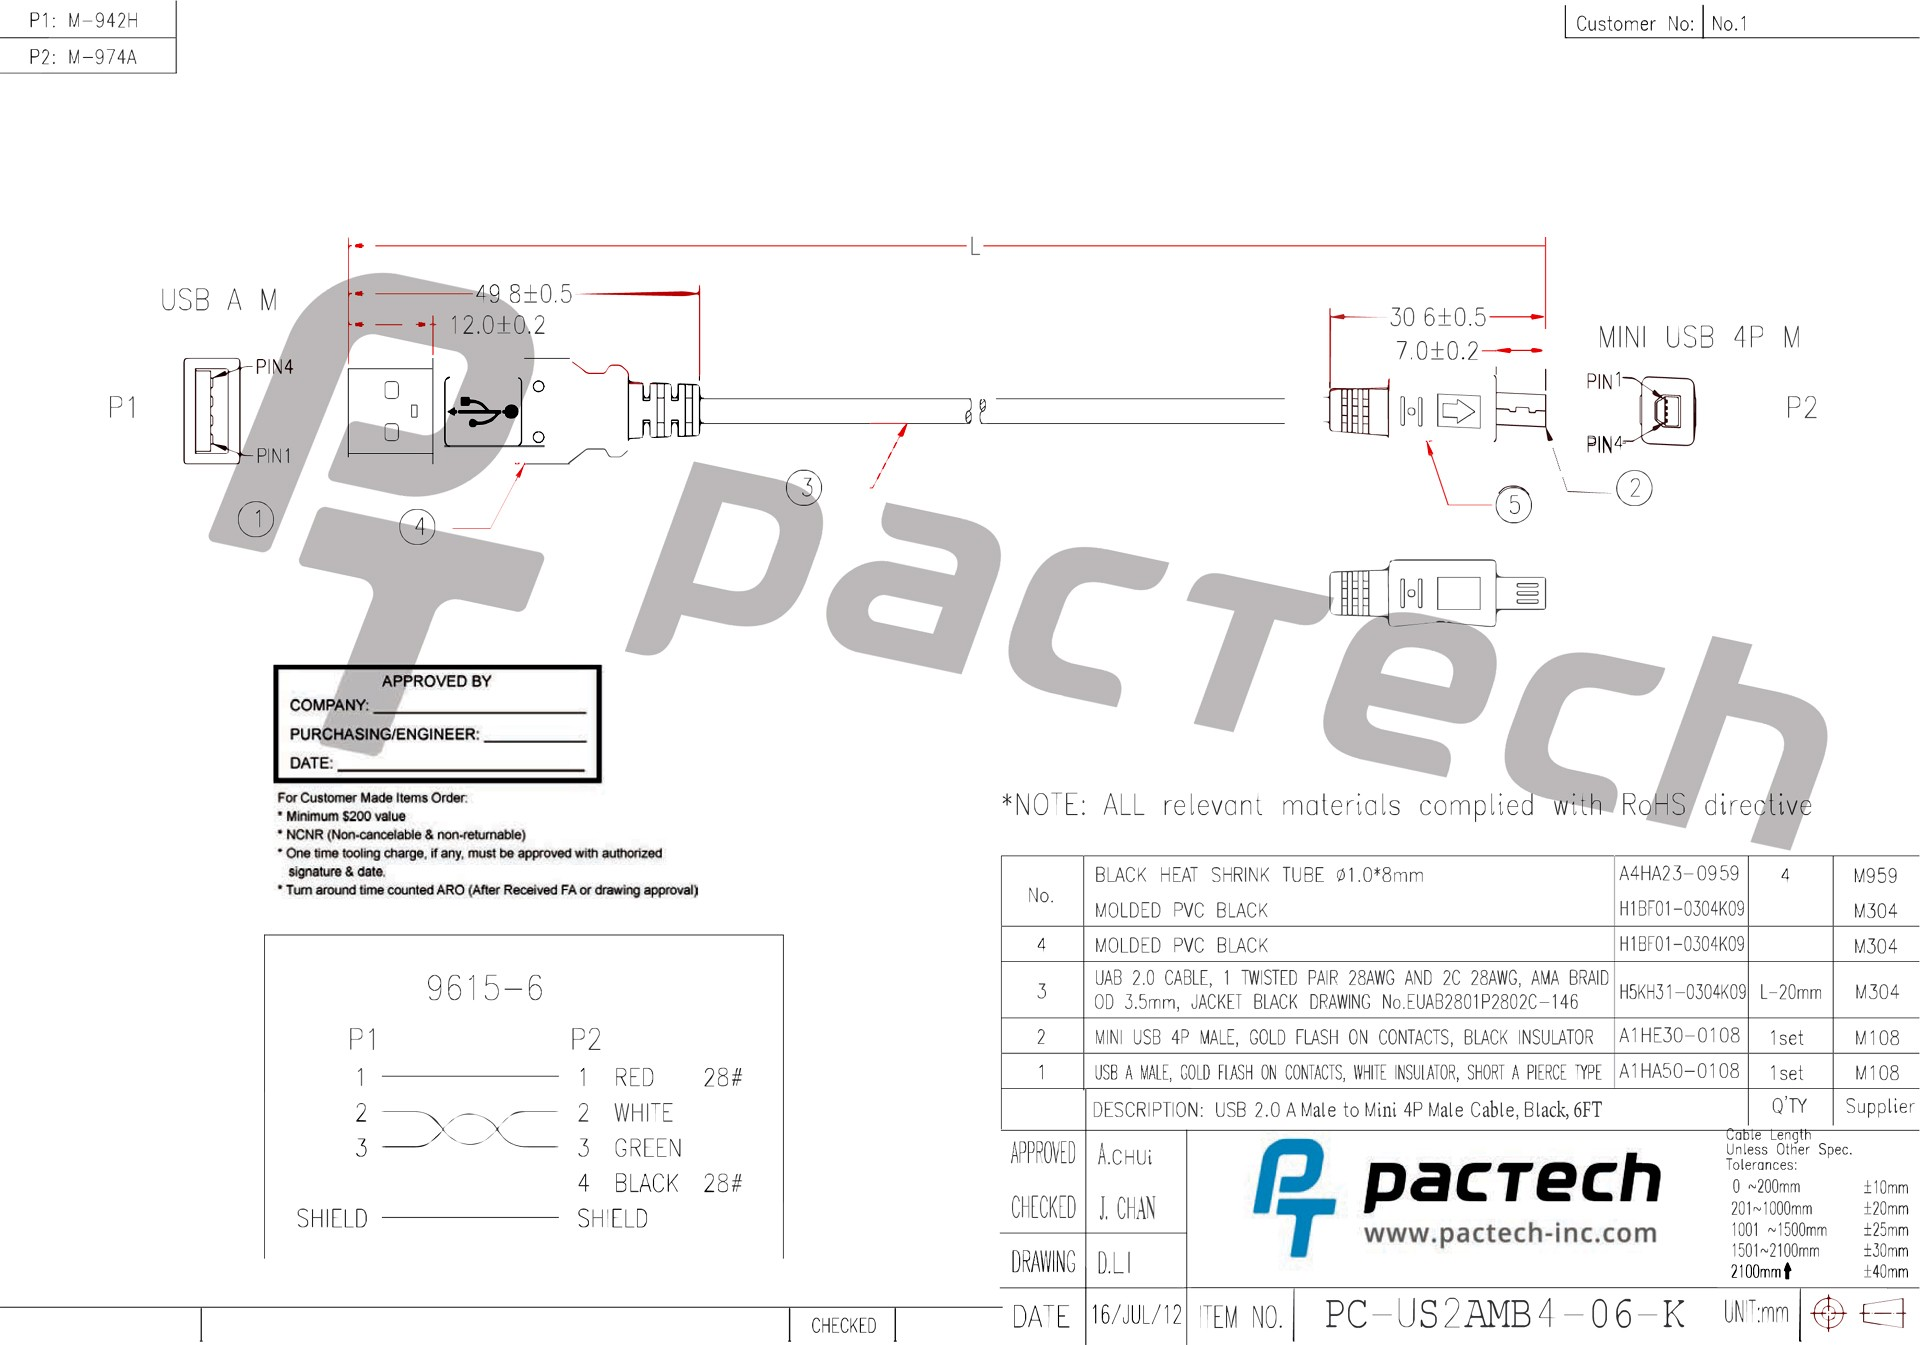 Esata/usb 2.0 to Usb 2.0 Wiring Schematic Usb 2 0 A Male to Mini 4p Male Cable Black 6ft Of Esata/usb 2.0 to Usb 2.0 Wiring Schematic